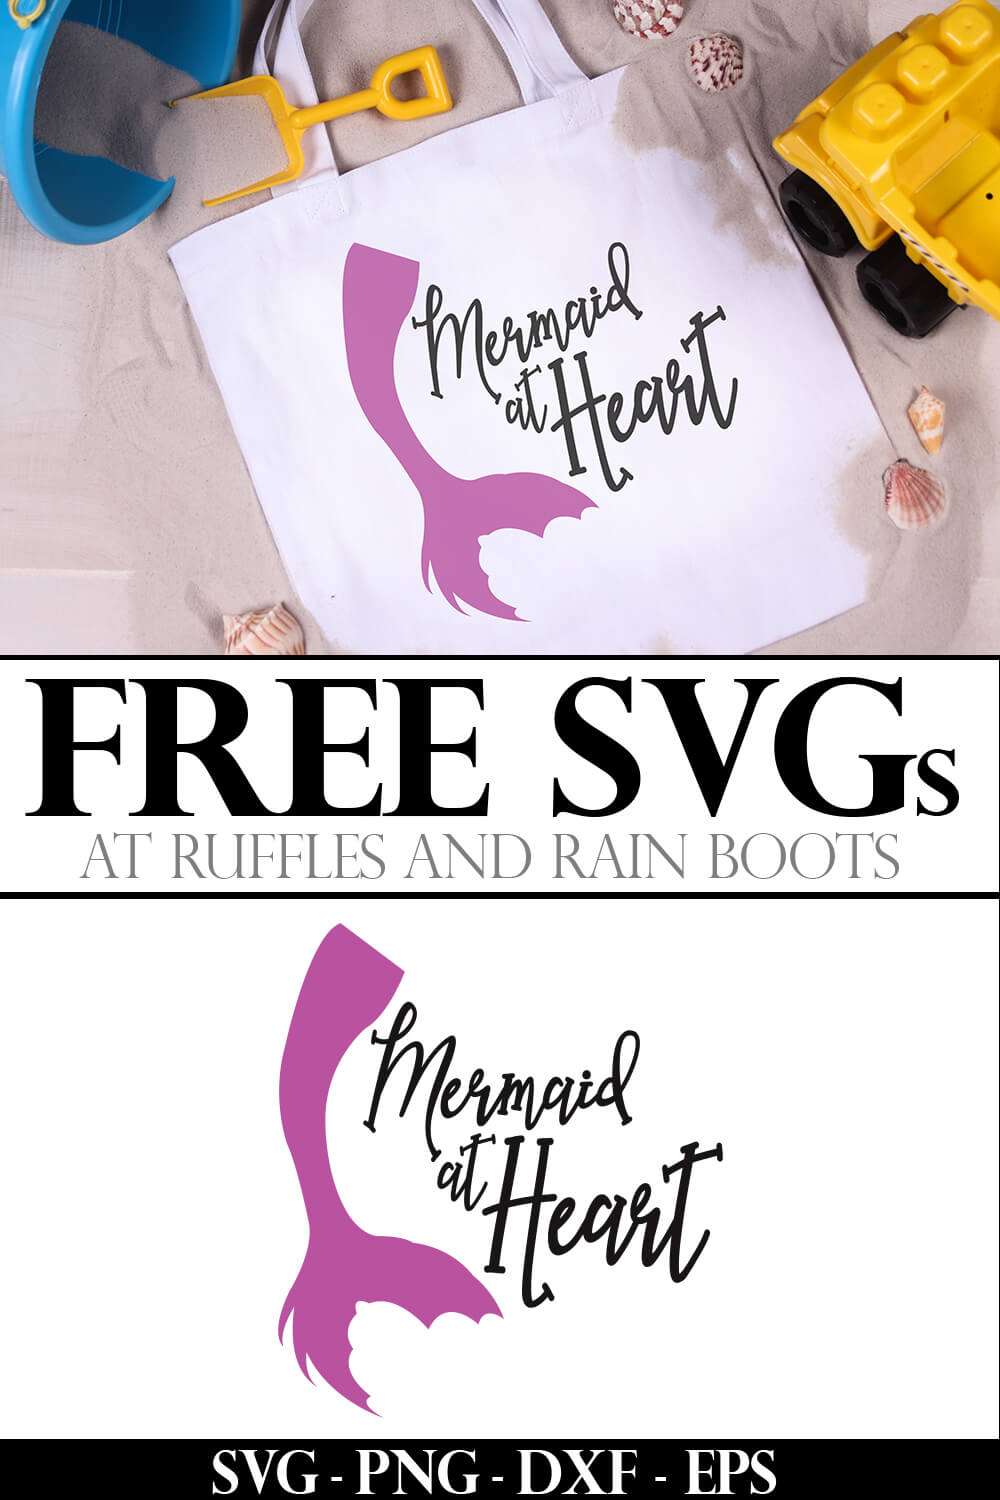 photo collage of mermaid at heart free mermaid cut file for silhouette with text which reads free svgs